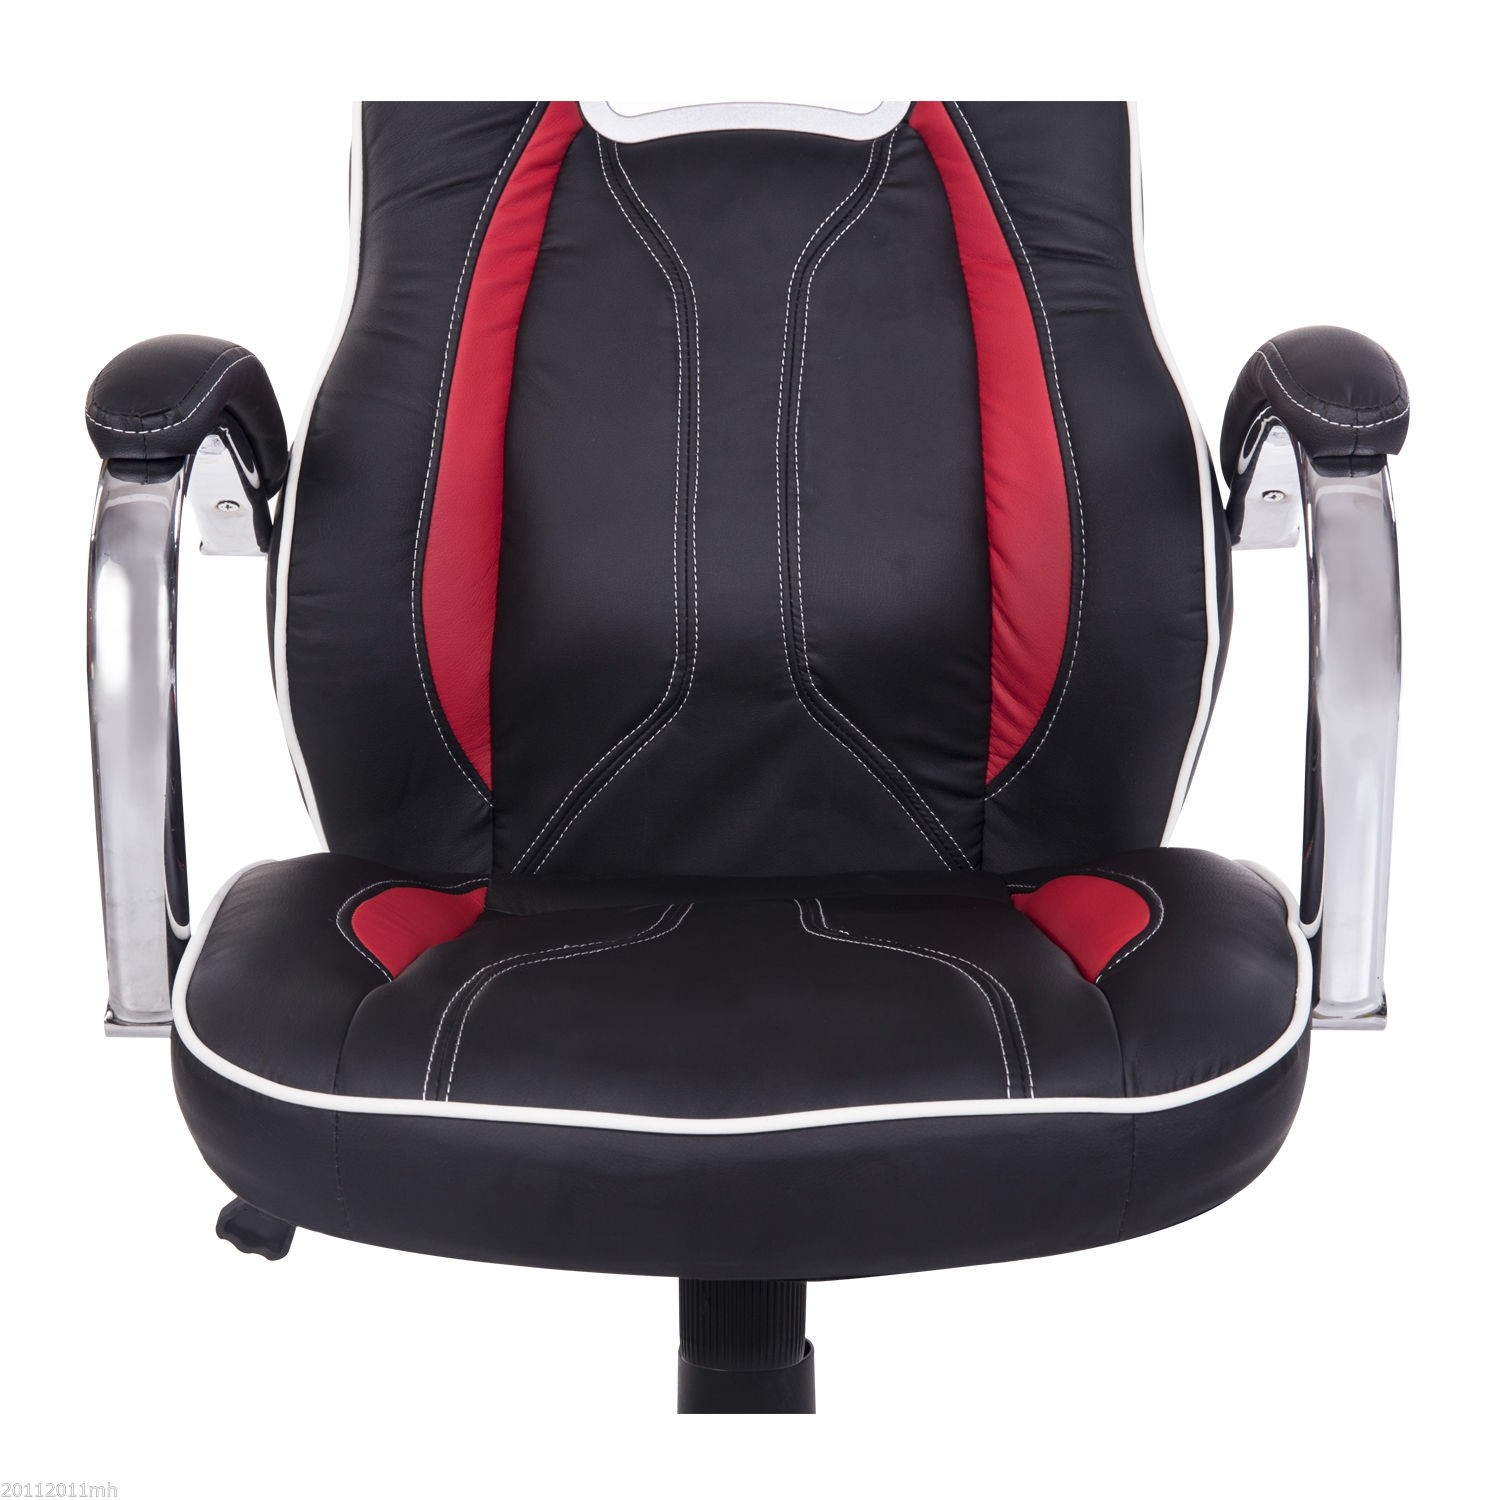 homcom high back executive racing office chair pu leather swivel